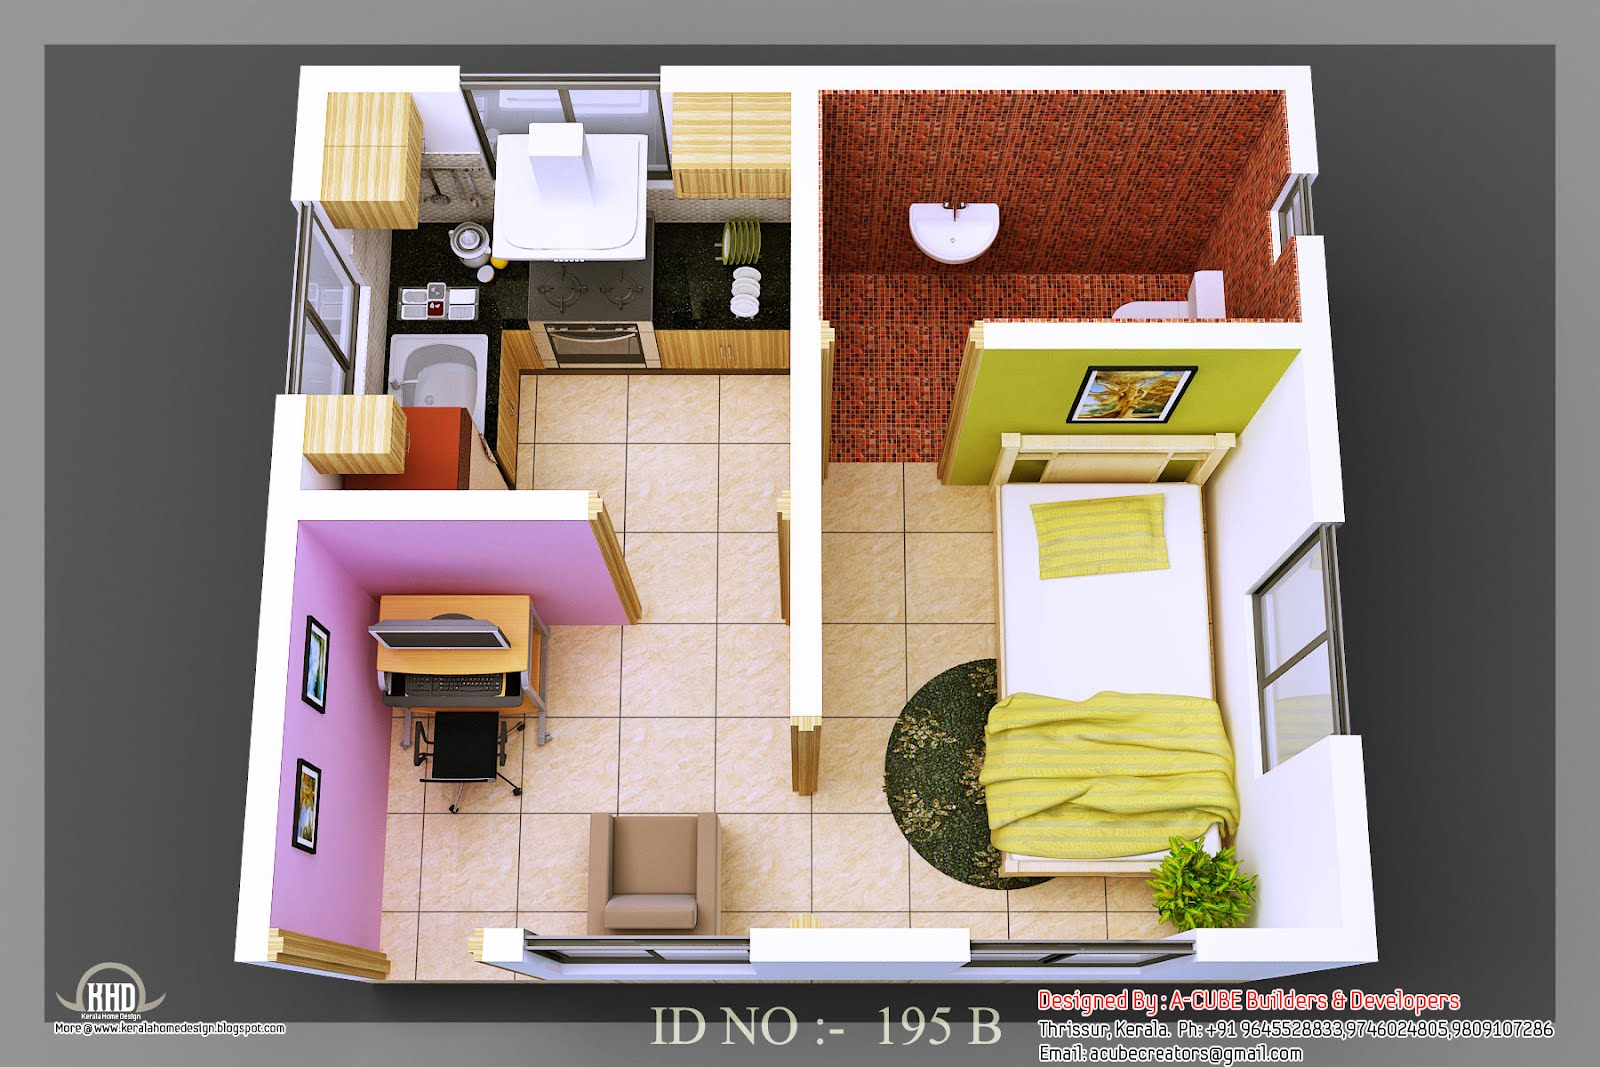 3d isometric views of small house plans a taste in heaven for 3d floor design